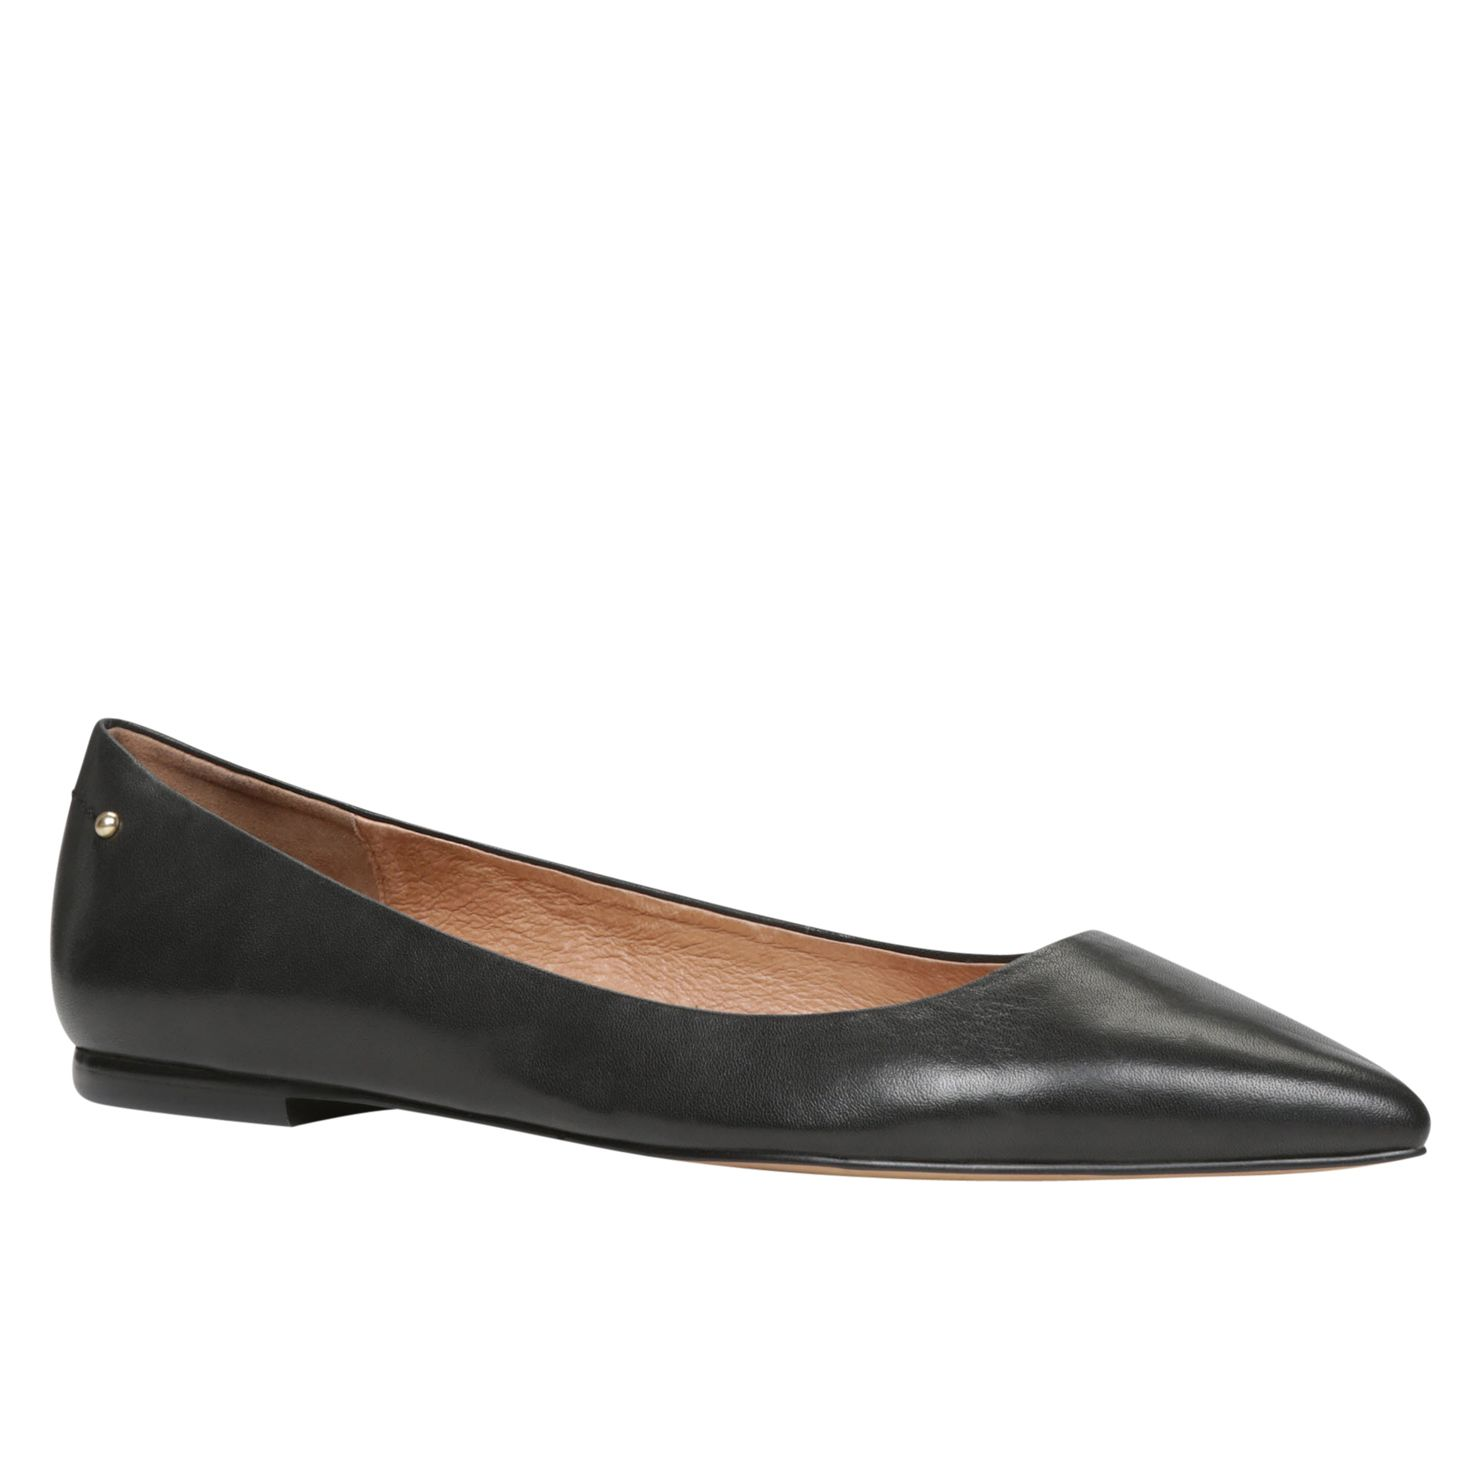 Ormelle pointed toe pump shoes